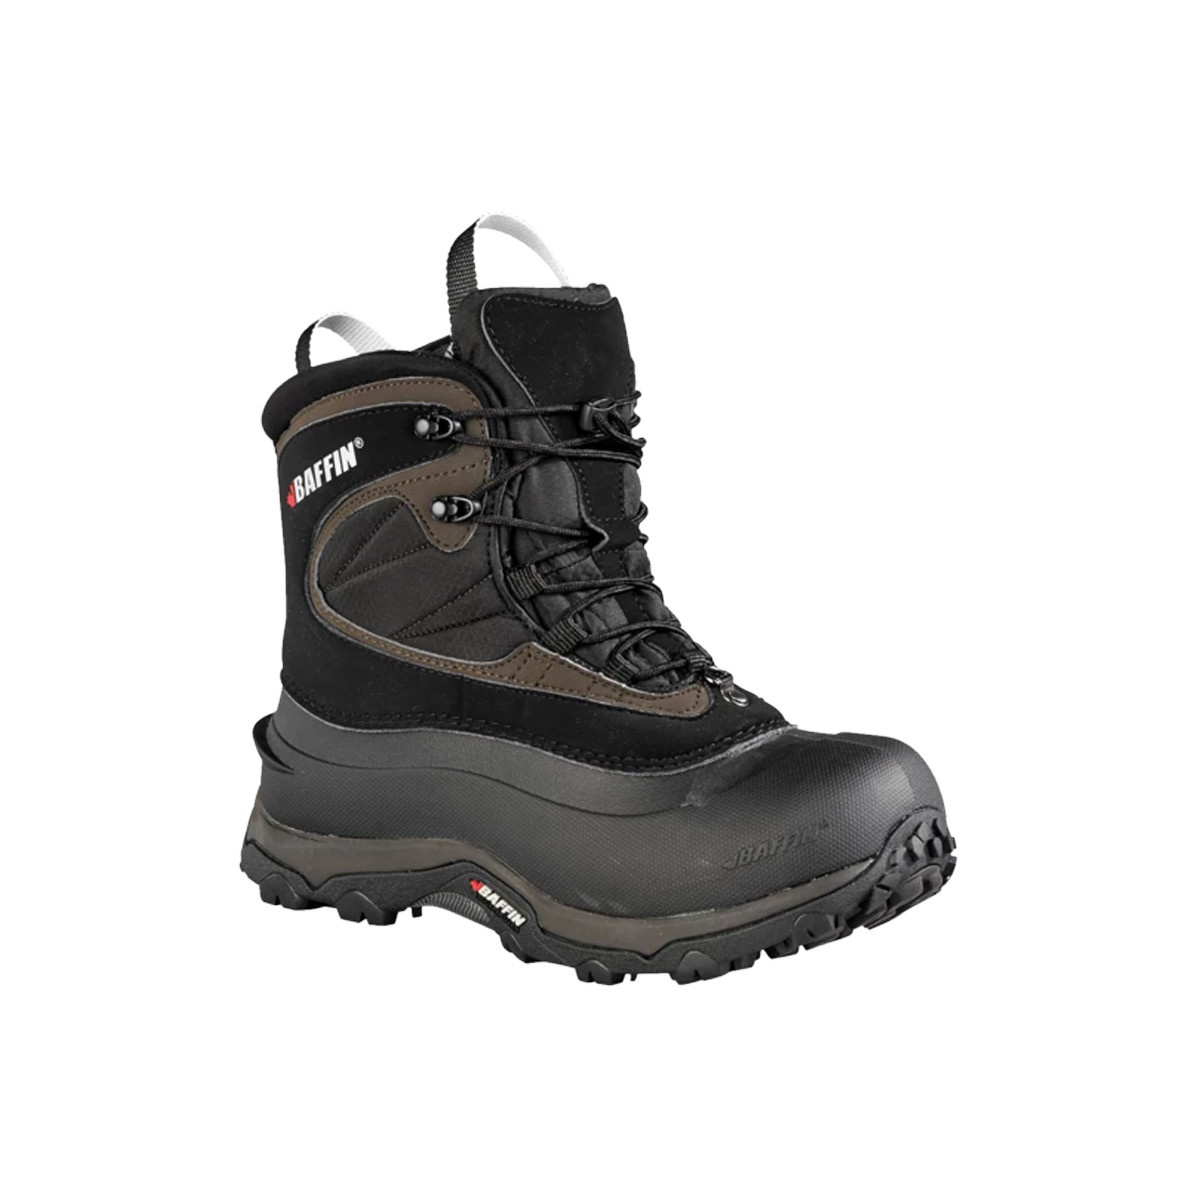 Baffin Men's Yoho Black Boot